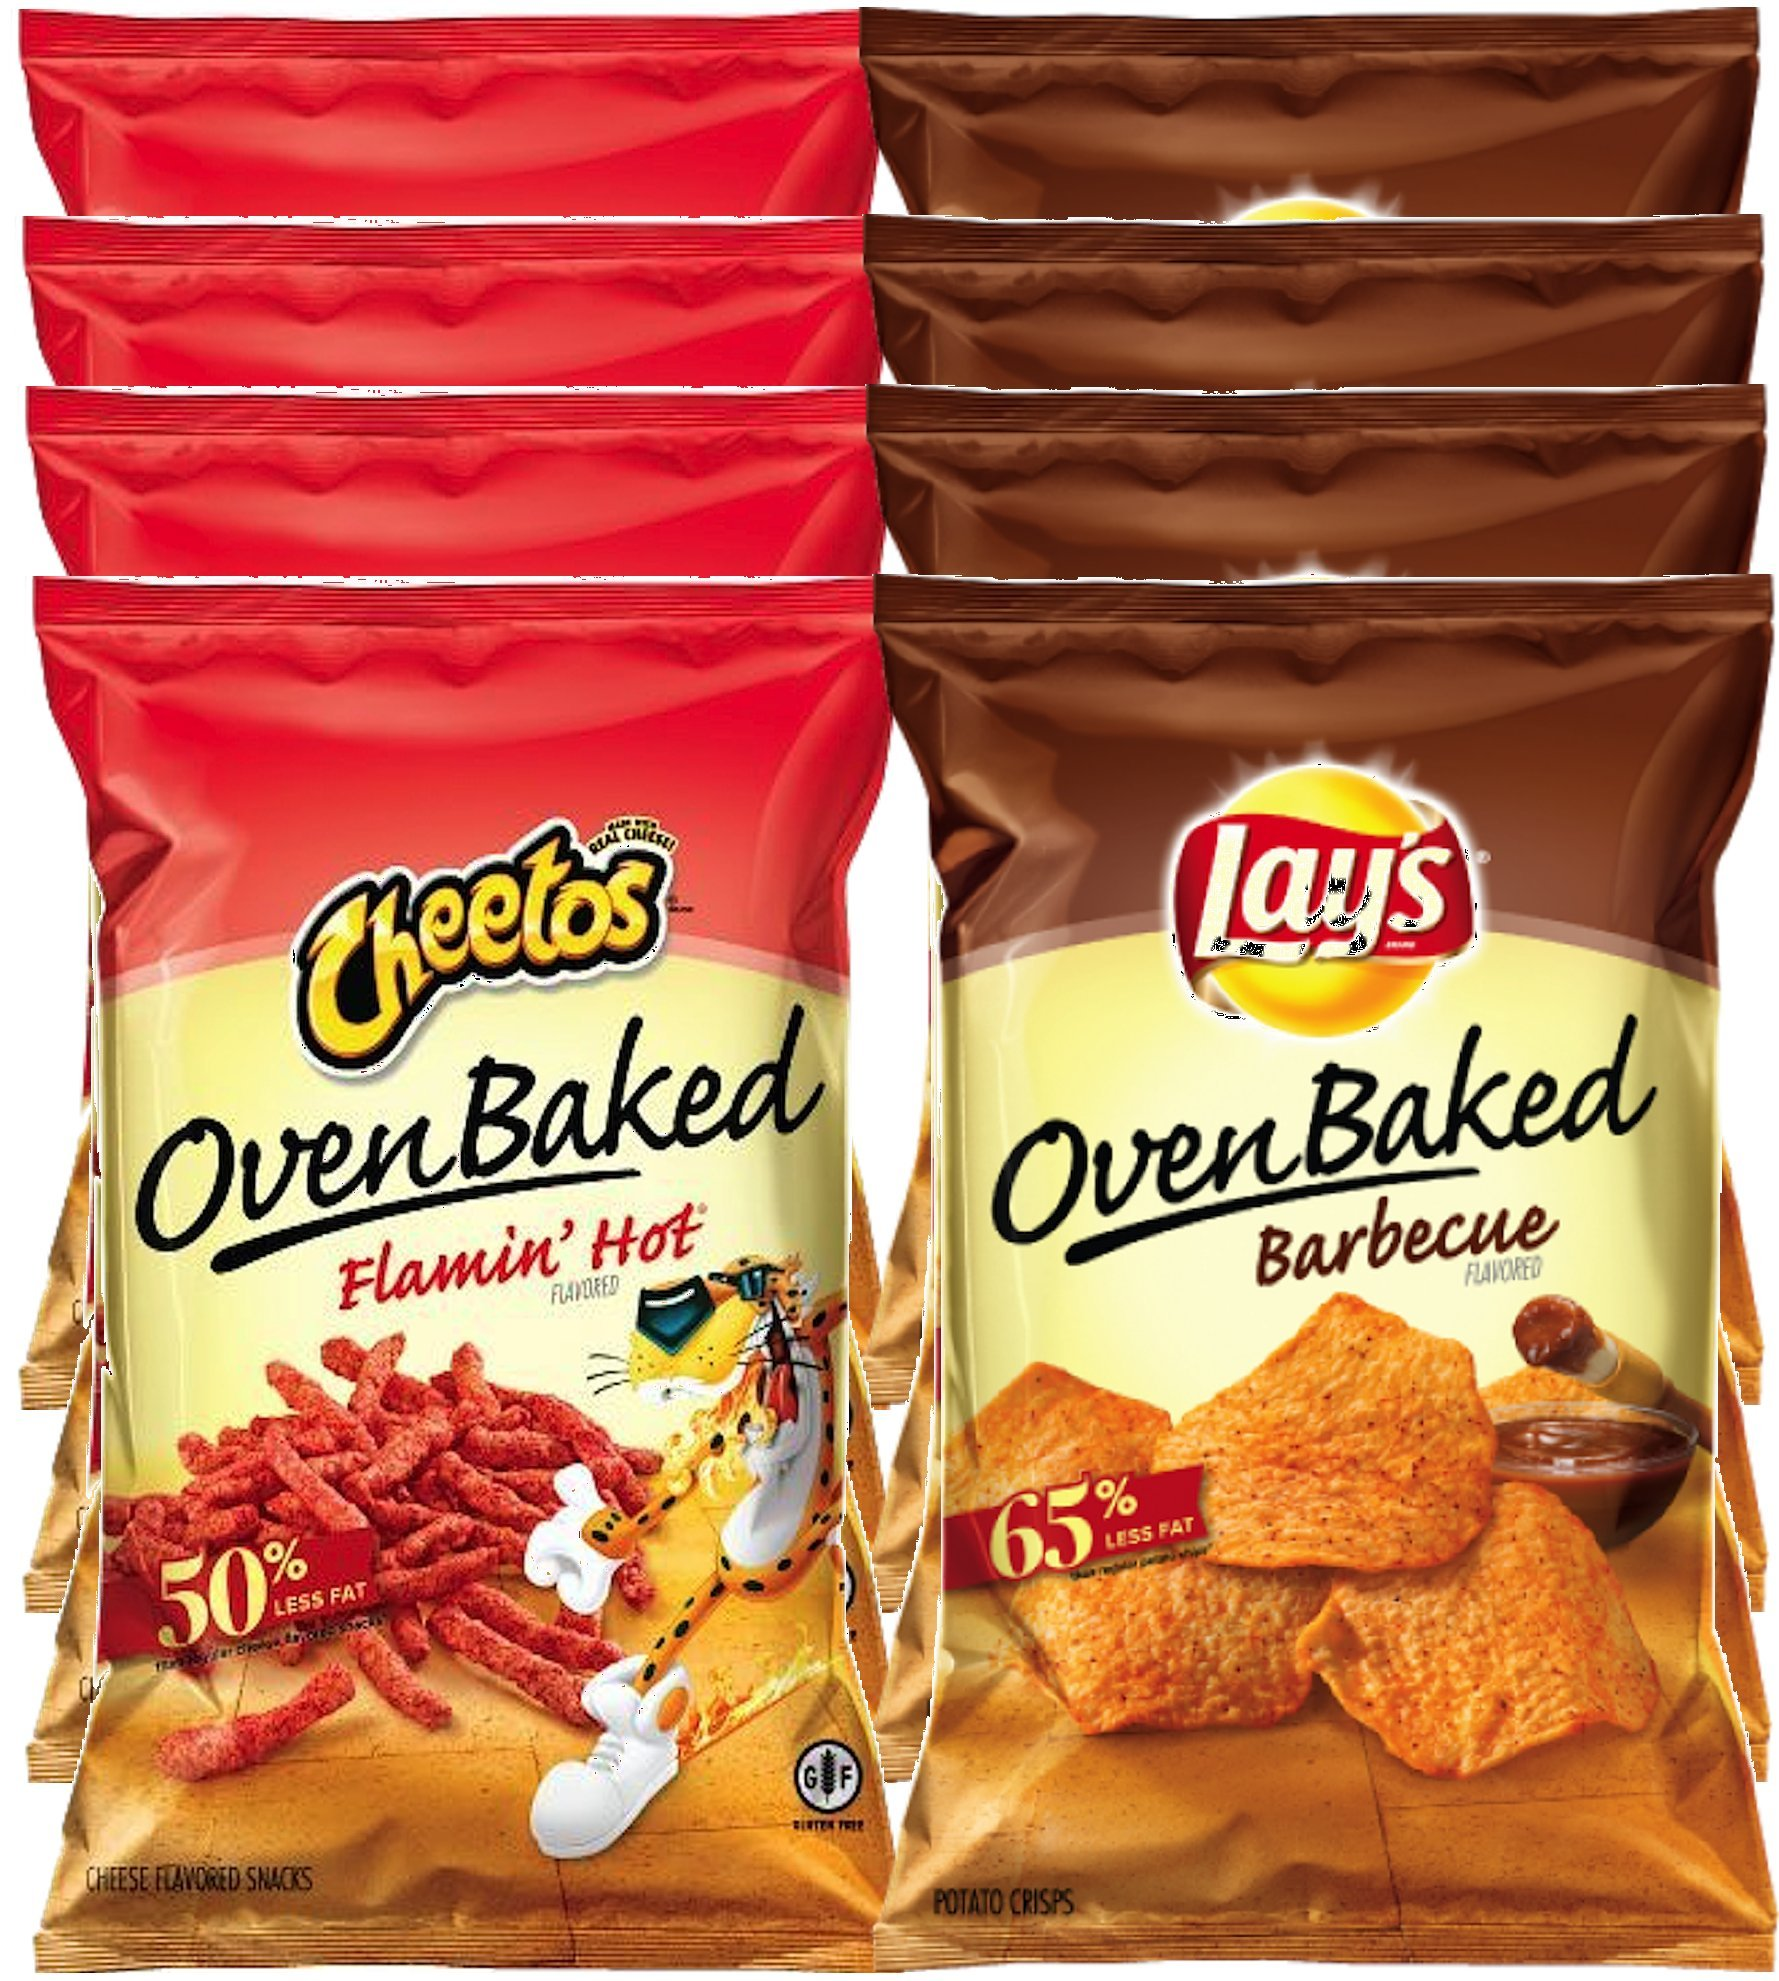 Cheetos Oven Baked Flamin' Hot & Lays Oven Baked Barbecue Less Fat More Flavor Snack Care Package for College, Military, Sports (Pack Of 8)